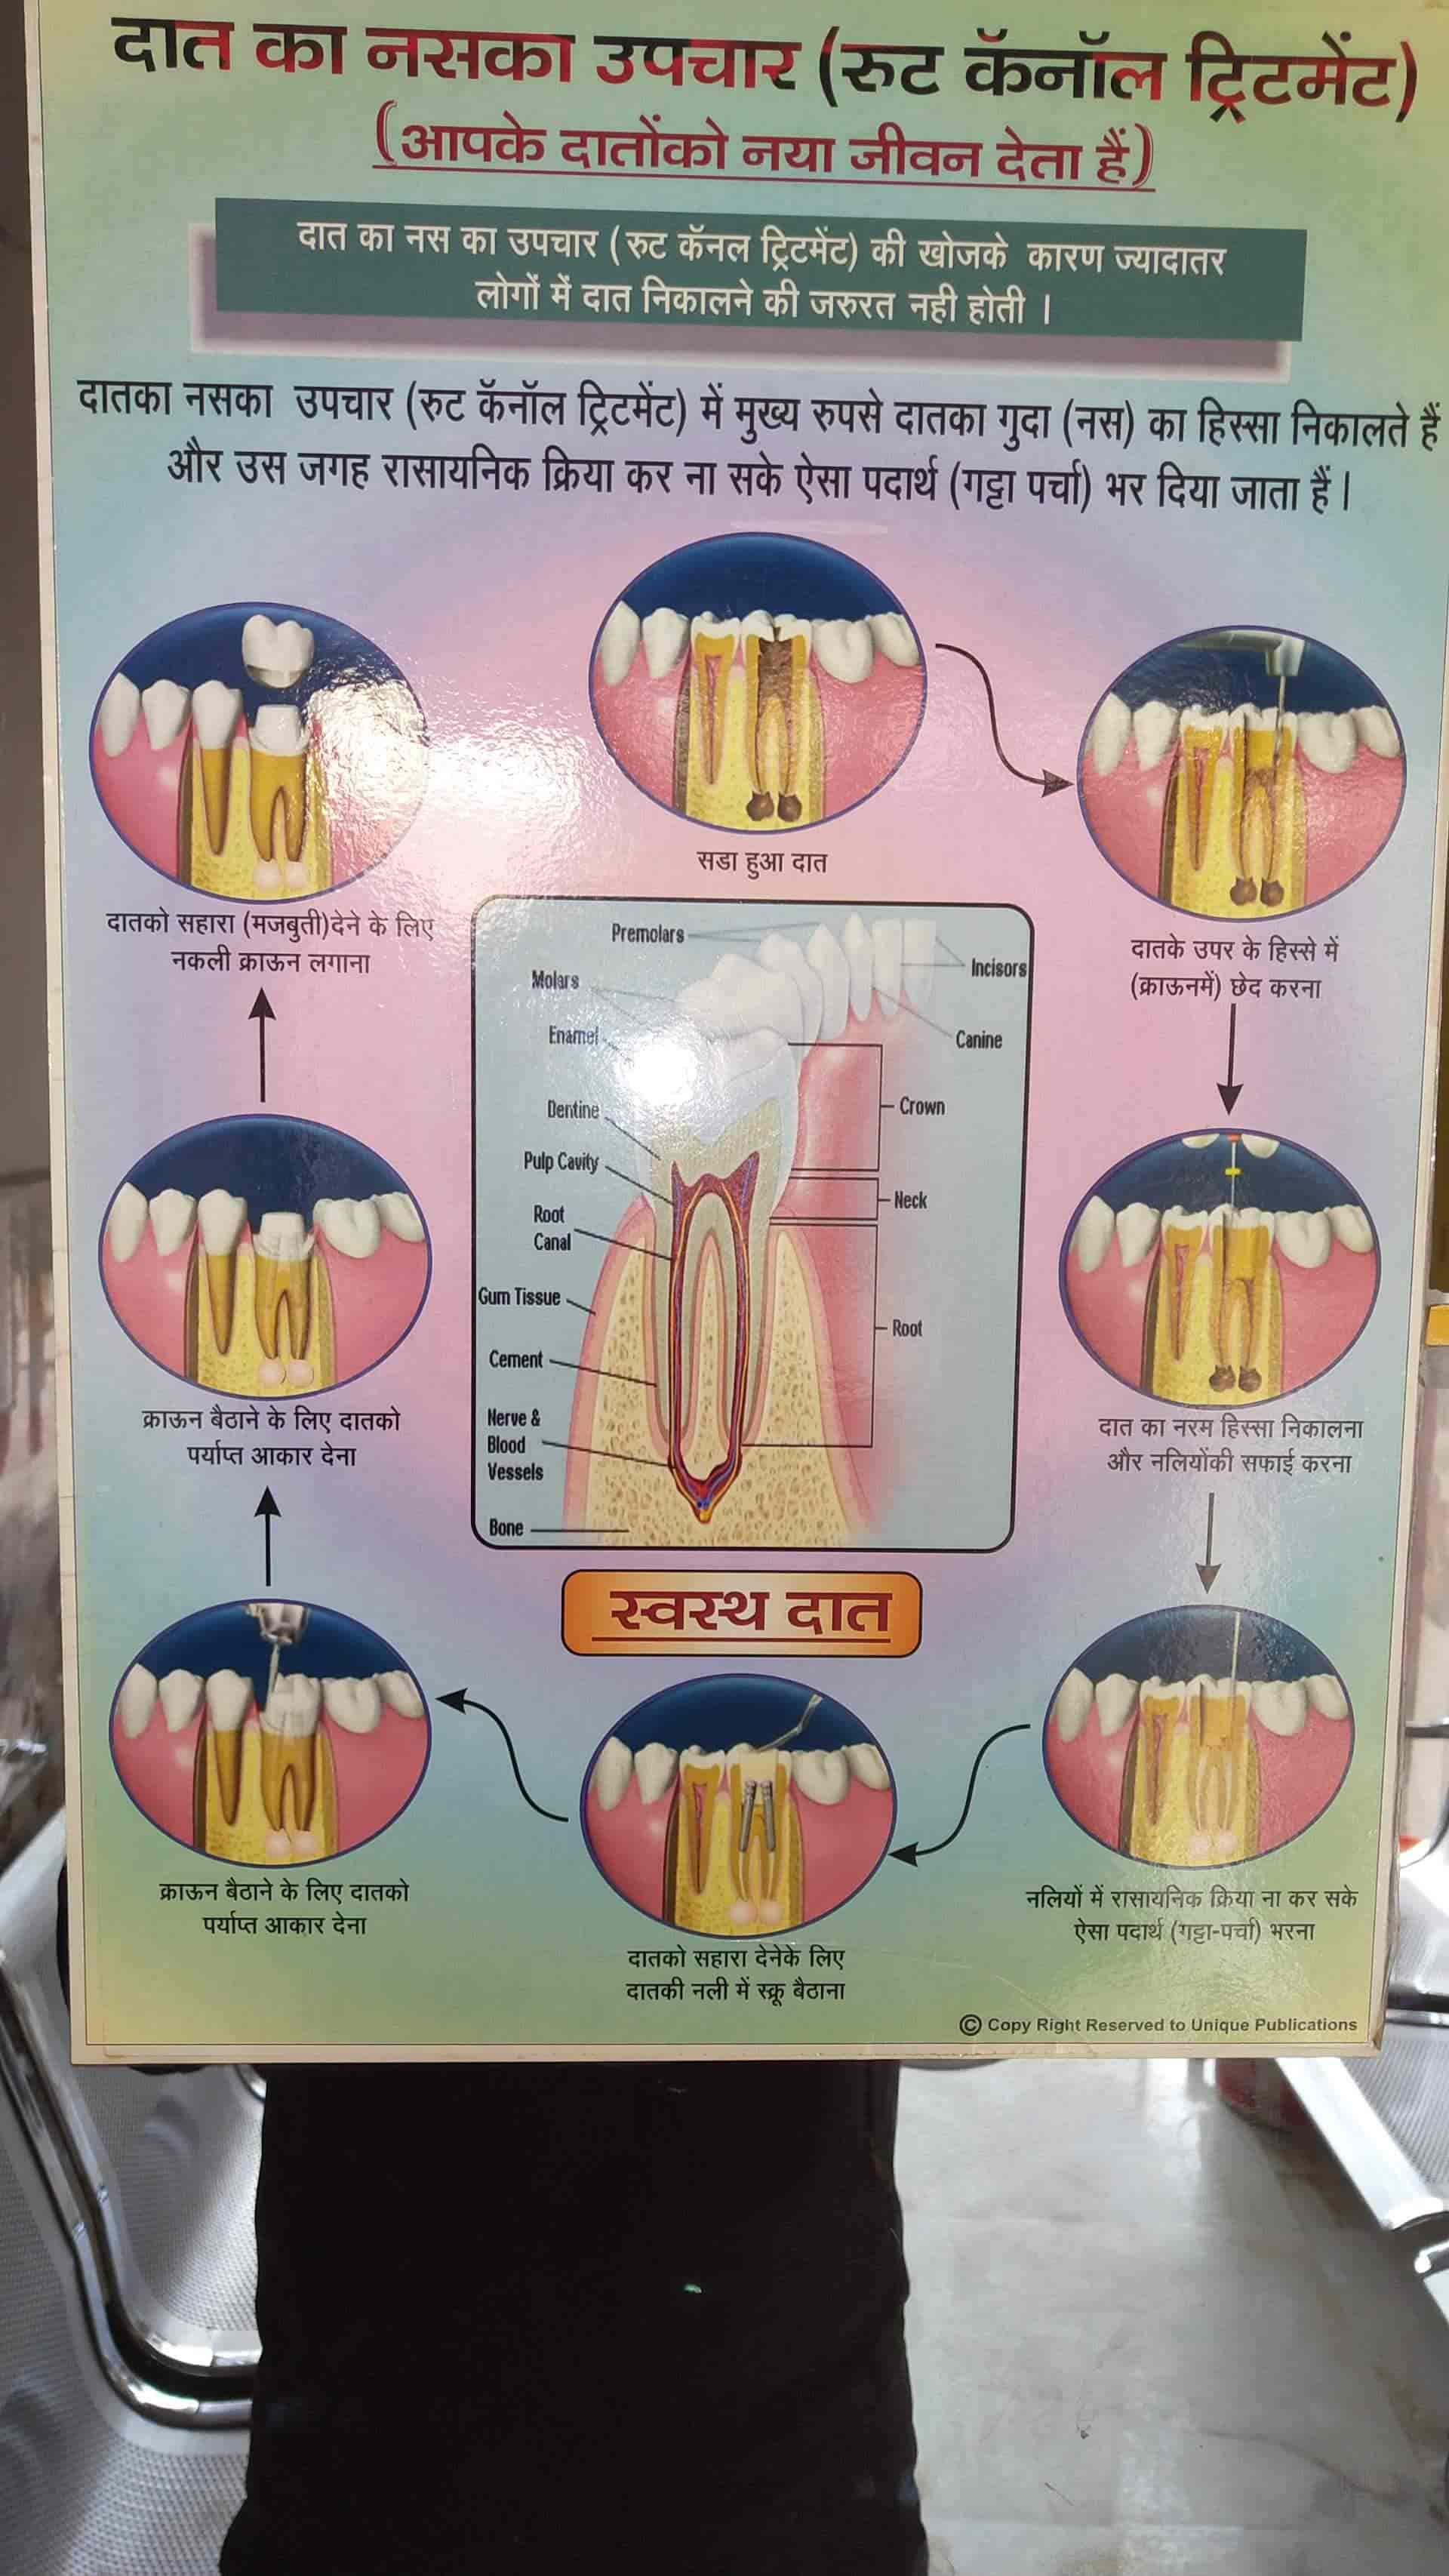 Perfect Smile Dental Clinic Photos, Rohtak, Rohtak- Pictures